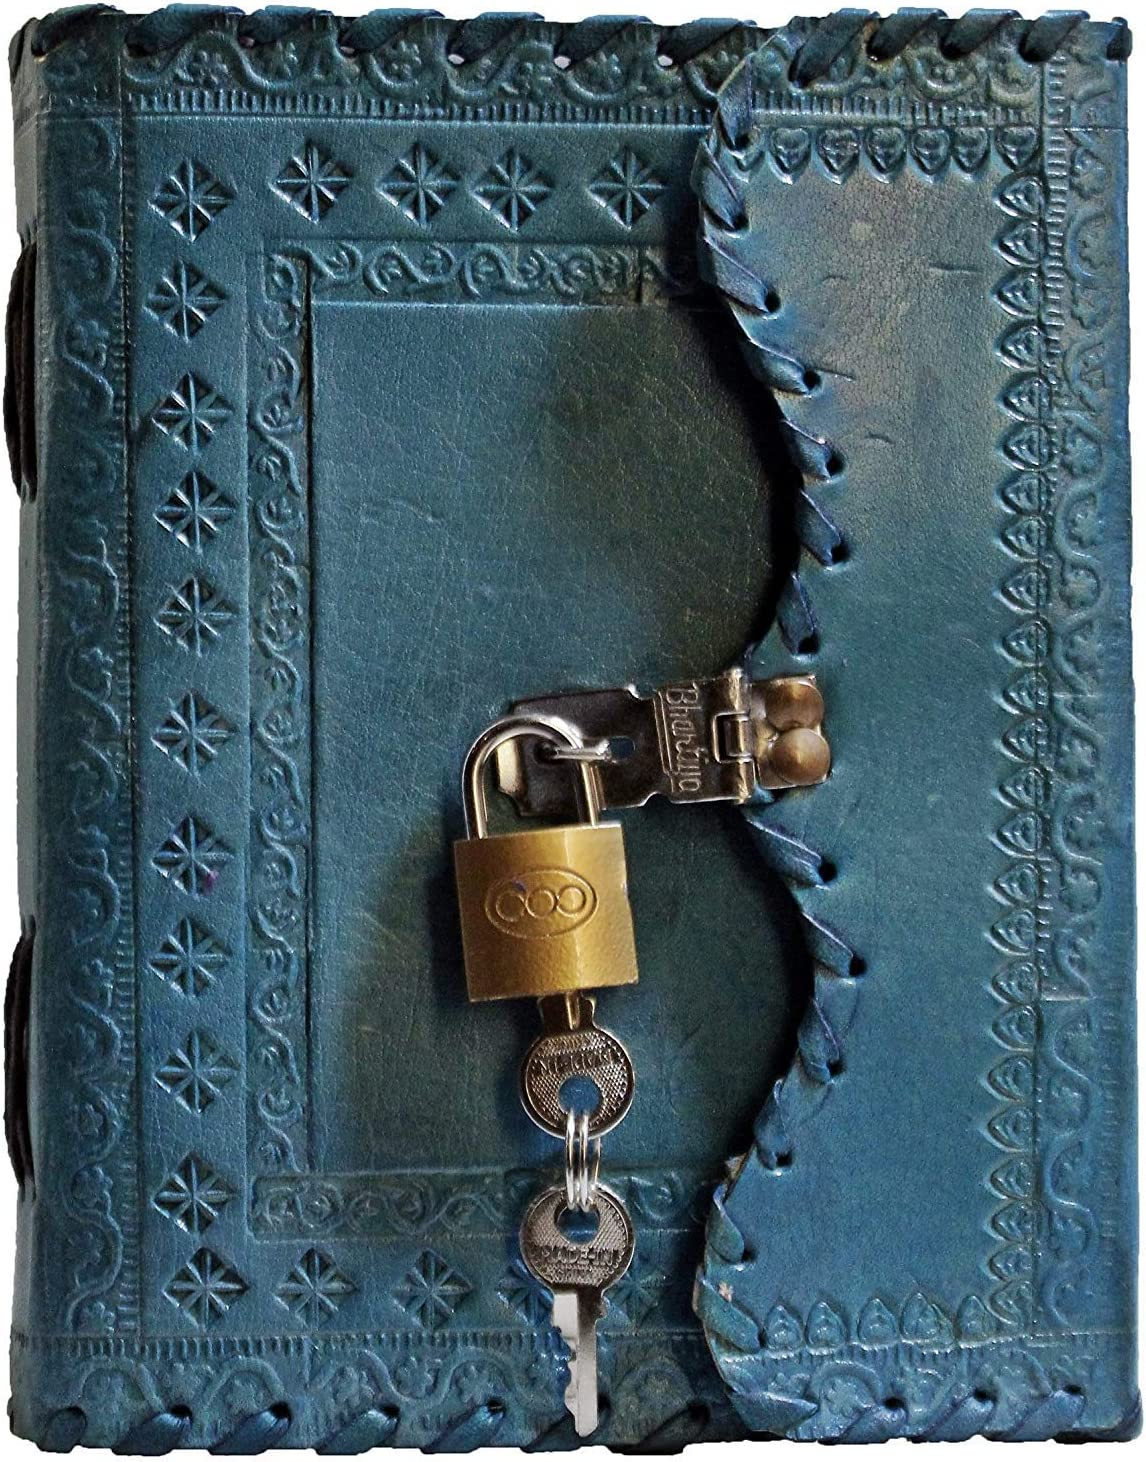 TUZECH Leather Journal for Men and Women Leather Diary to Write Poems,Sketchbook, Record Keeping Notebook Personal Memoir with Lock and Key - Unlined (Blue)